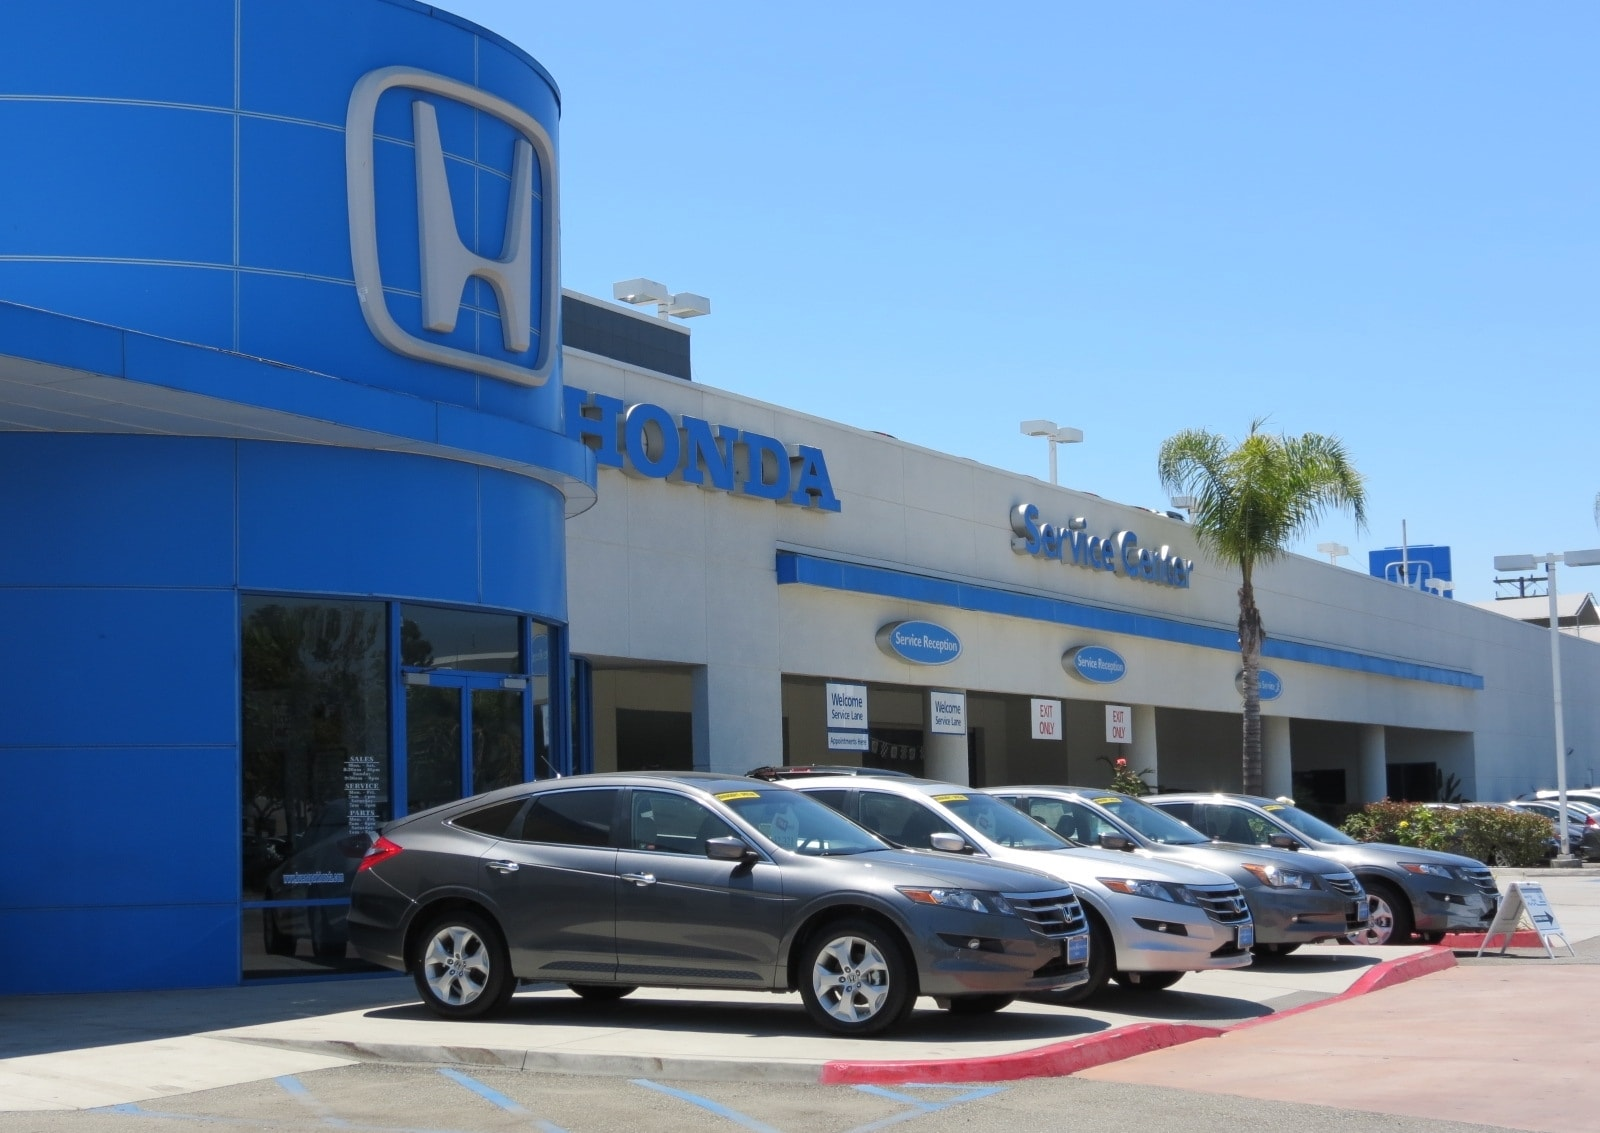 About buena park honda orange county long beach area for Long beach honda dealer